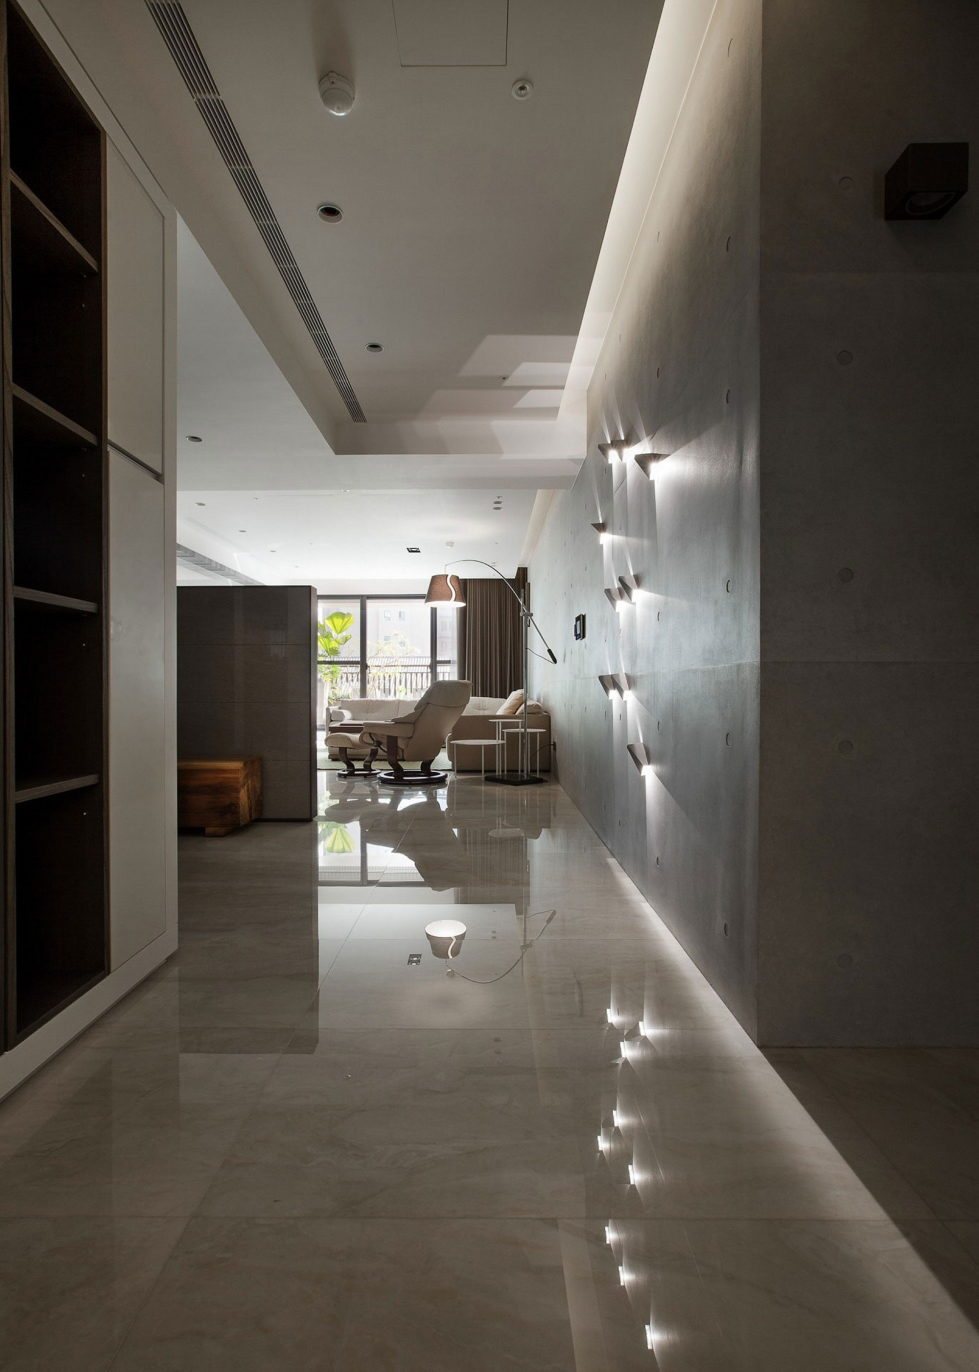 The Wang House Apartment In Taiwan Upon The Project Of The PM Design Studio 10